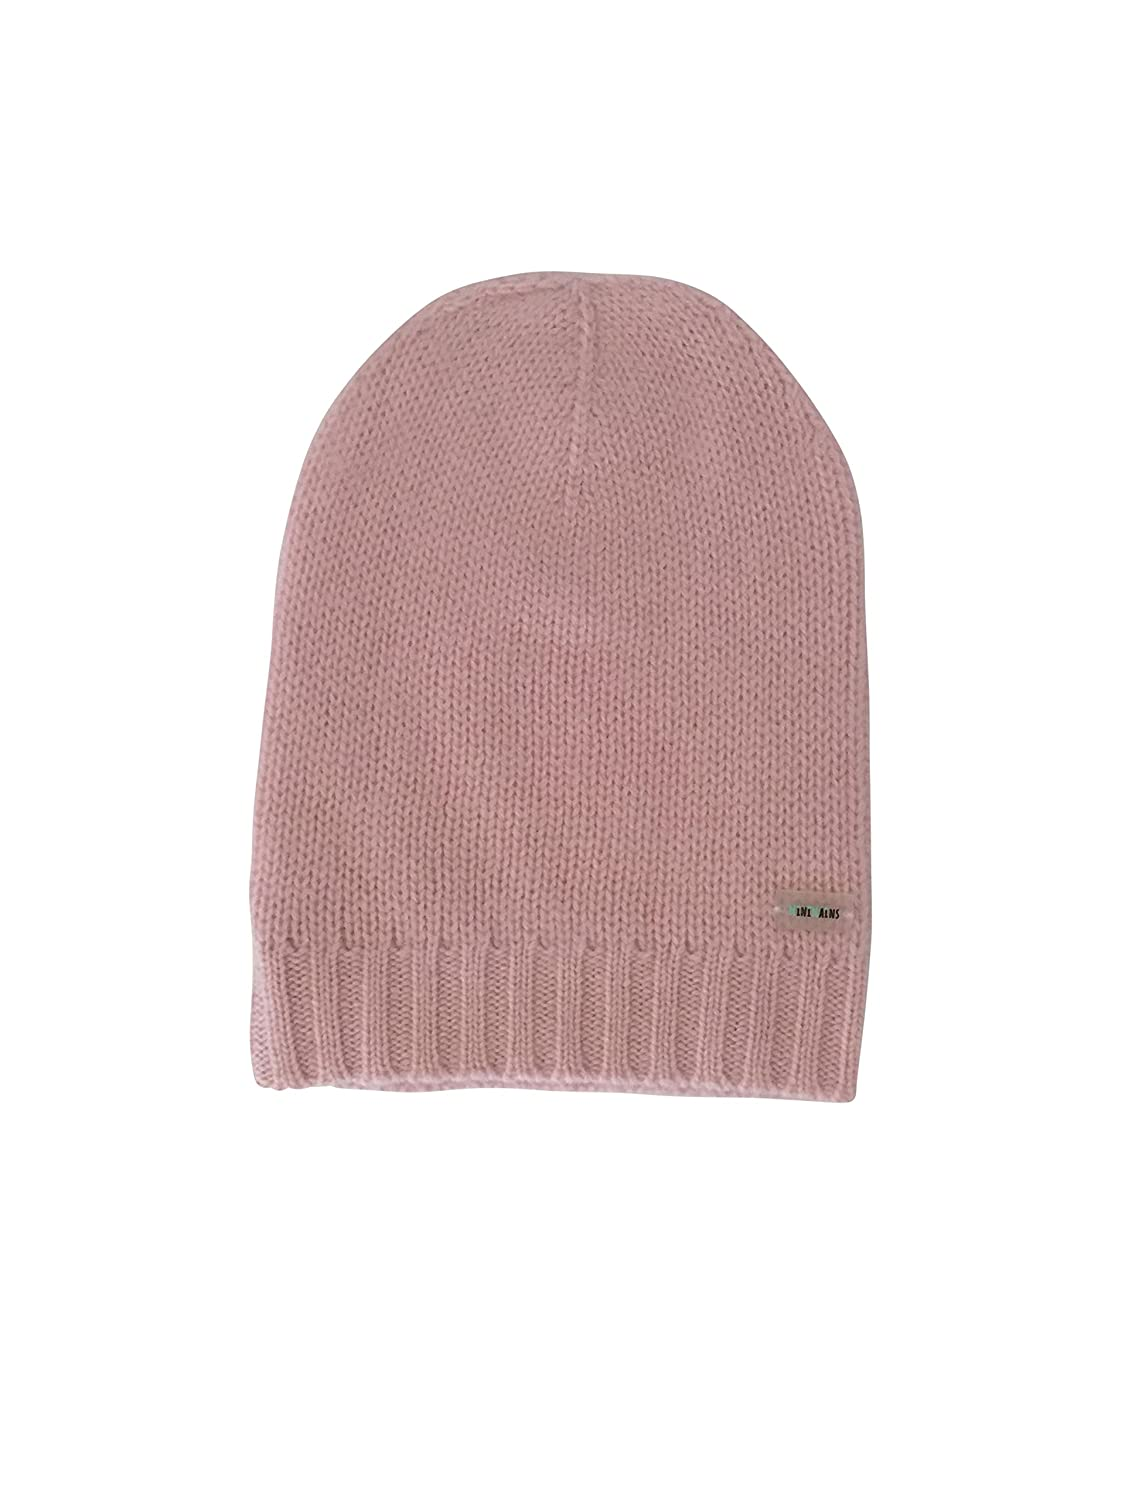 15d4c0c03 MINIMAINS INCREDIBLY SOFT 100% Eco-Friendly Cashmere Beanie Hat Kids PINK  1-2yrs - Slouchy Beanie, Skull, Hat, Winter, Fall, Must-have